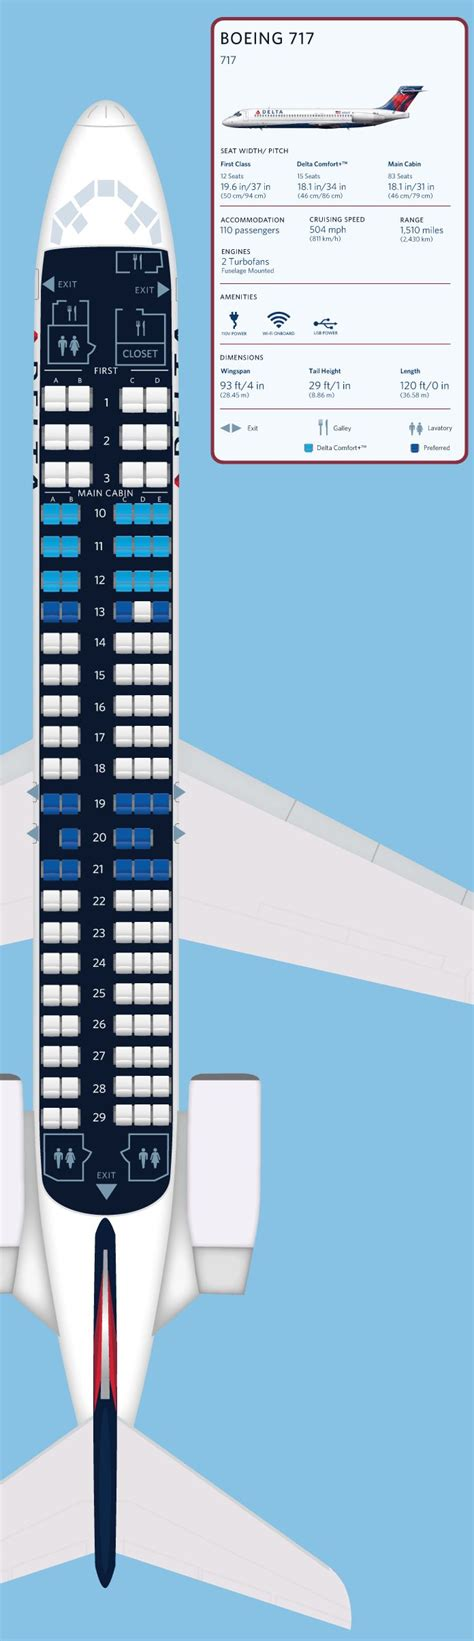 delta seating charts 17 best images about airline seat plans on